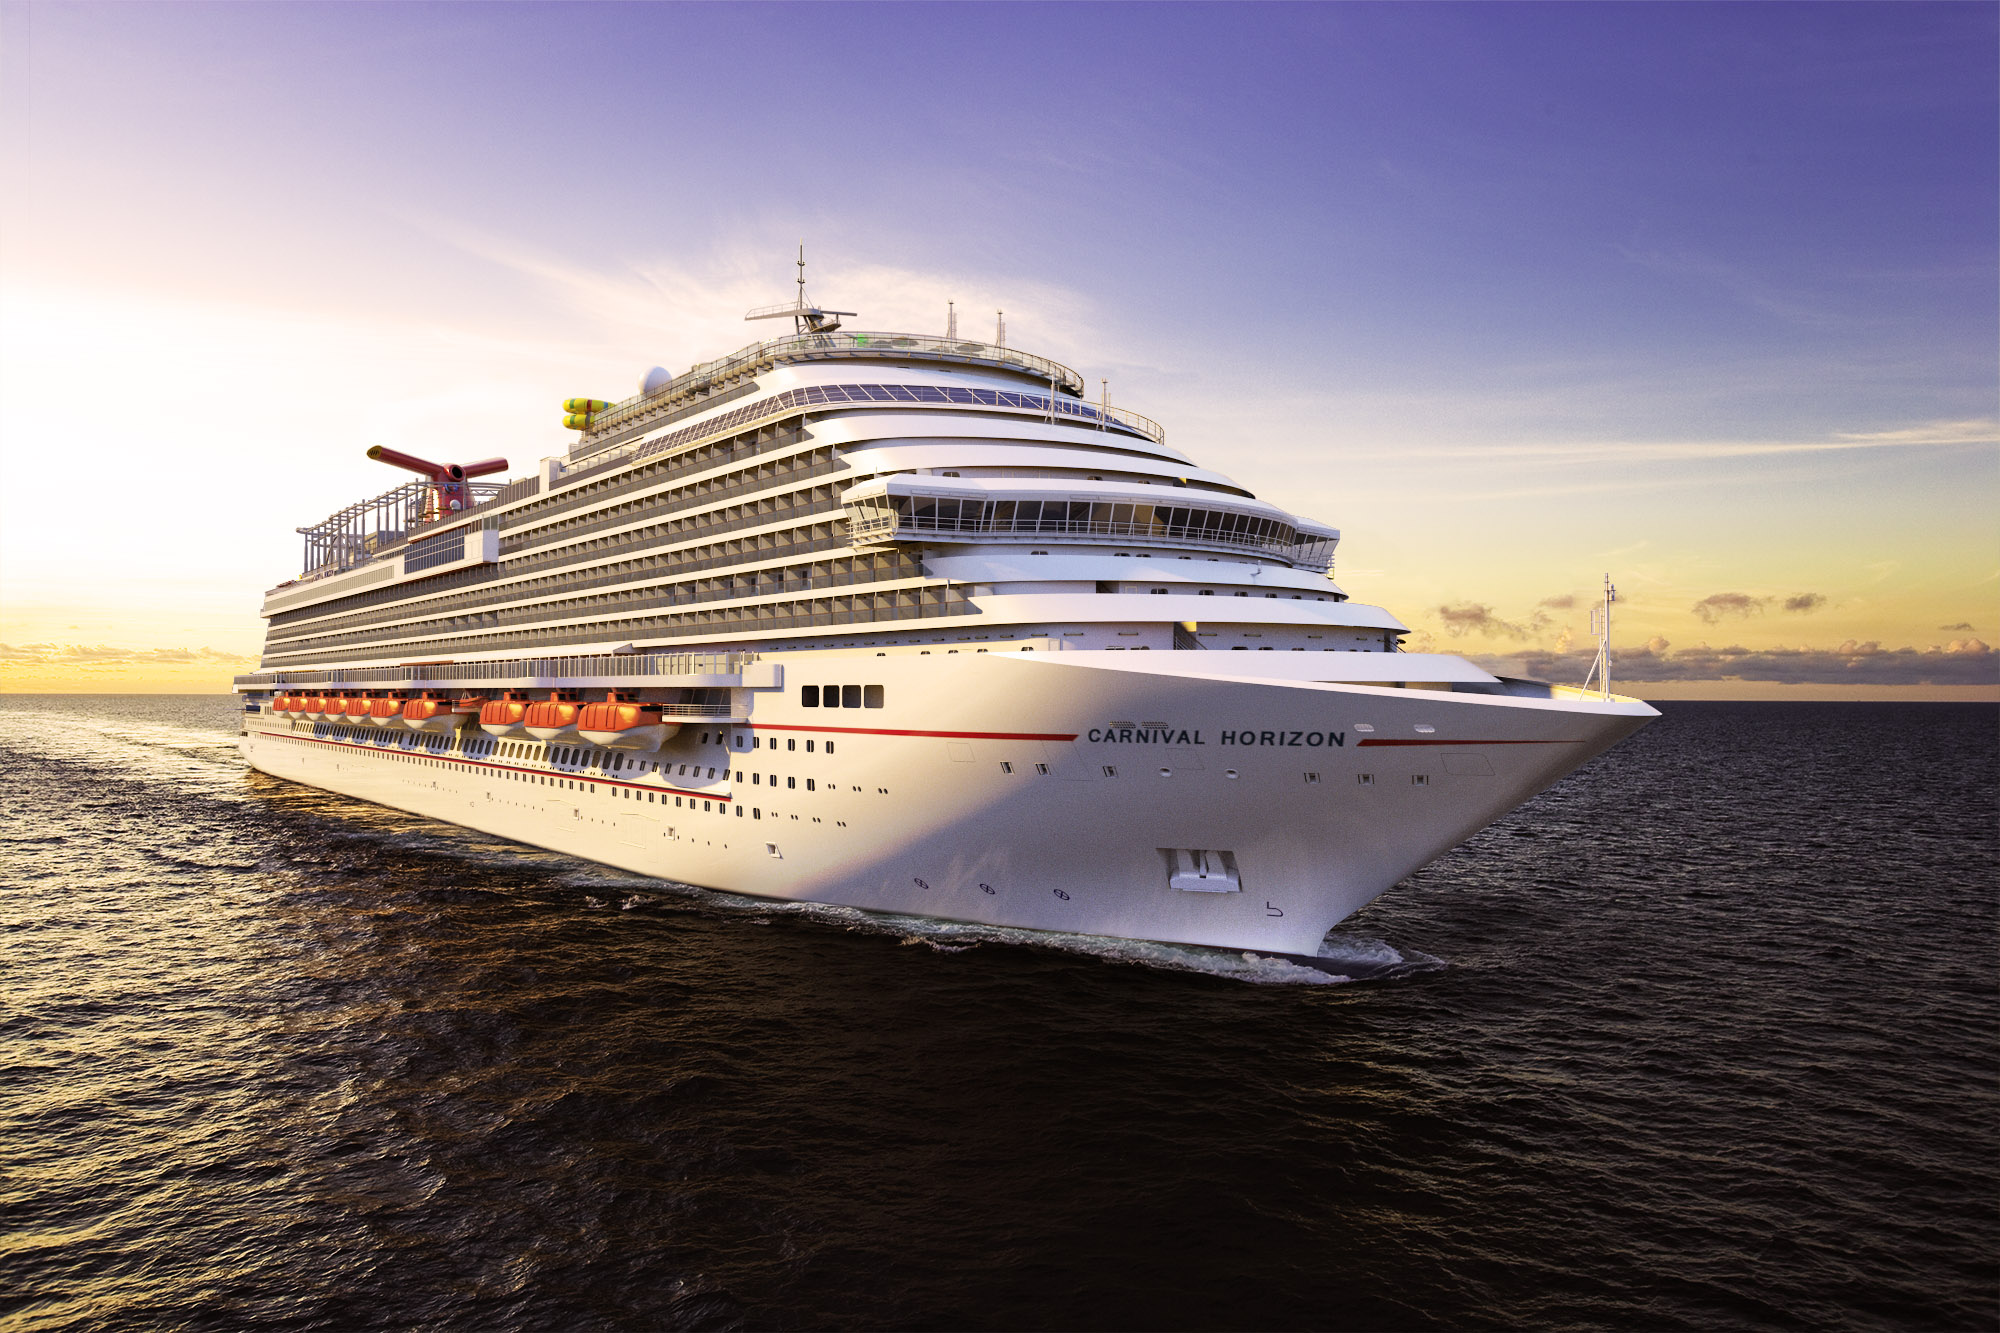 Carnival Horizon to Debut with a Series of European Voyages in 2018 Followed by Caribbean Itineraries from New York and Miami